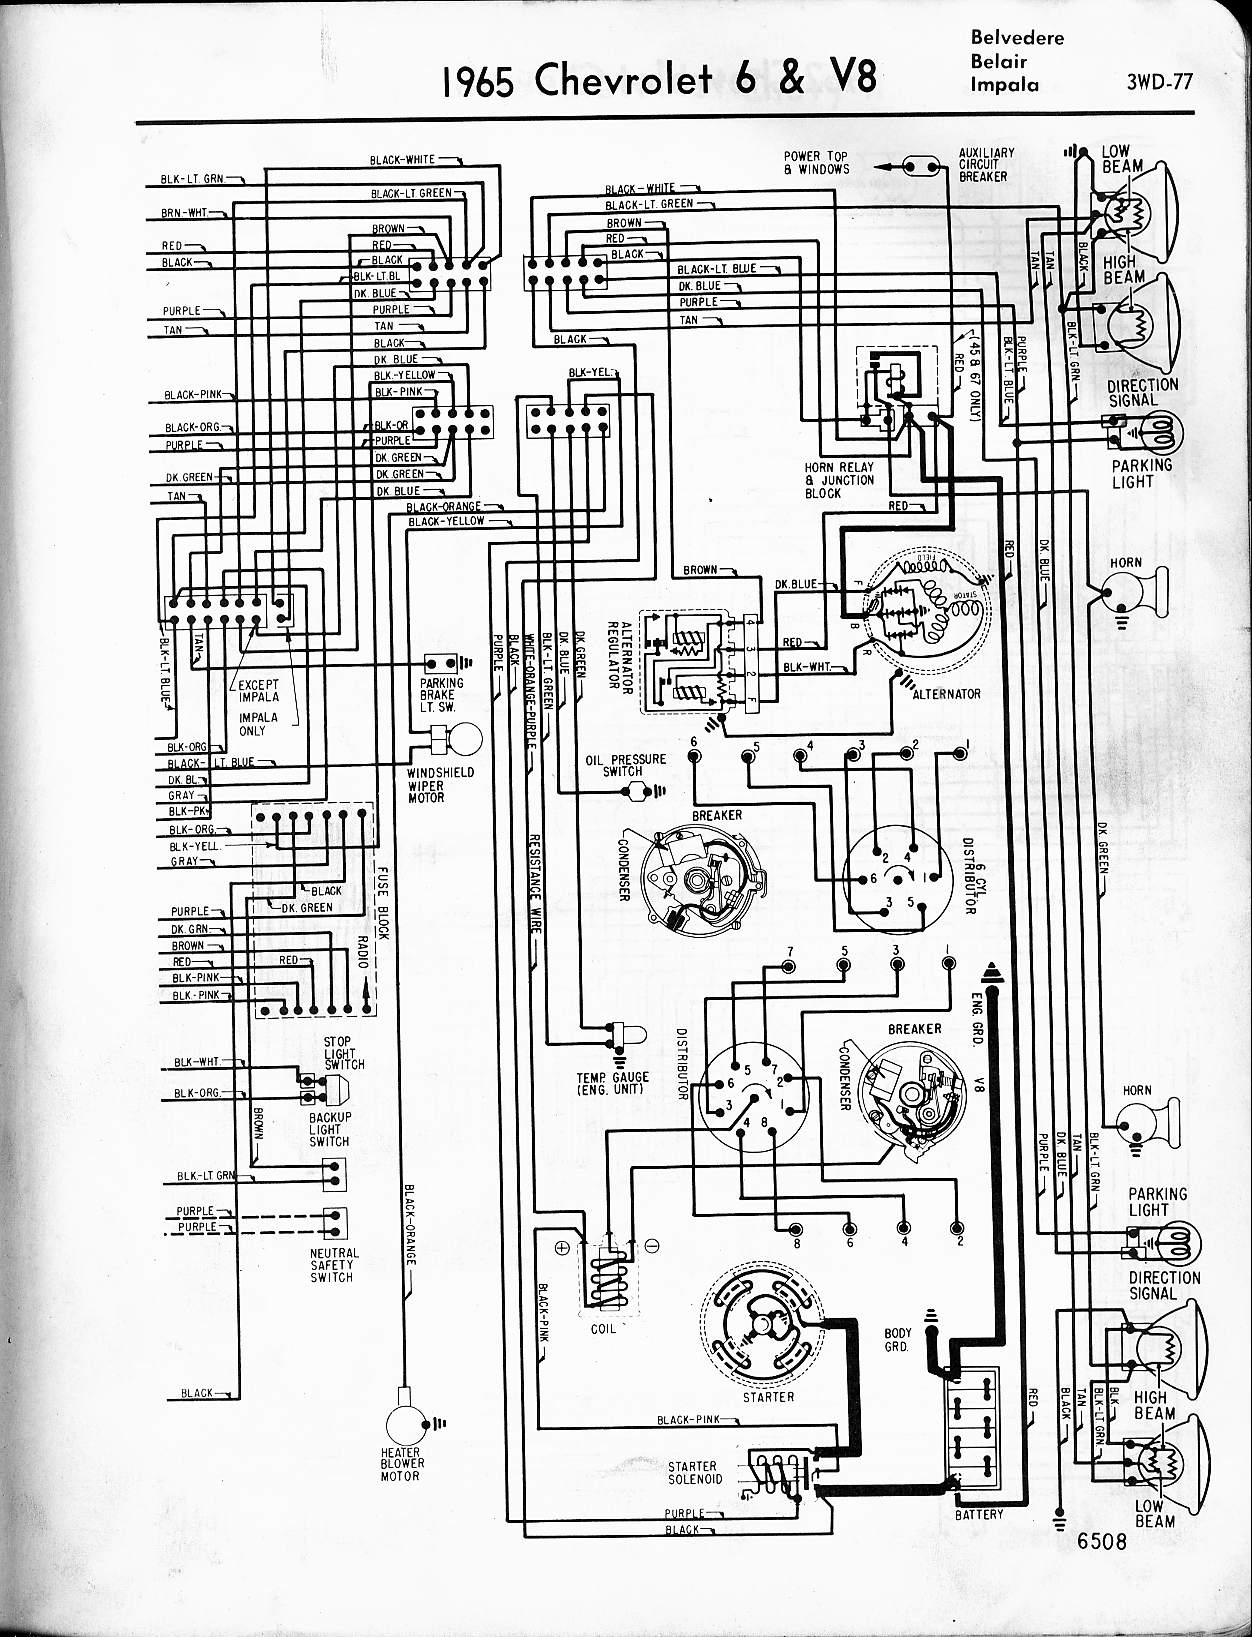 MWireChev65_3WD 077 chevy diagrams 1965 thunderbird alternator wiring diagram at soozxer.org